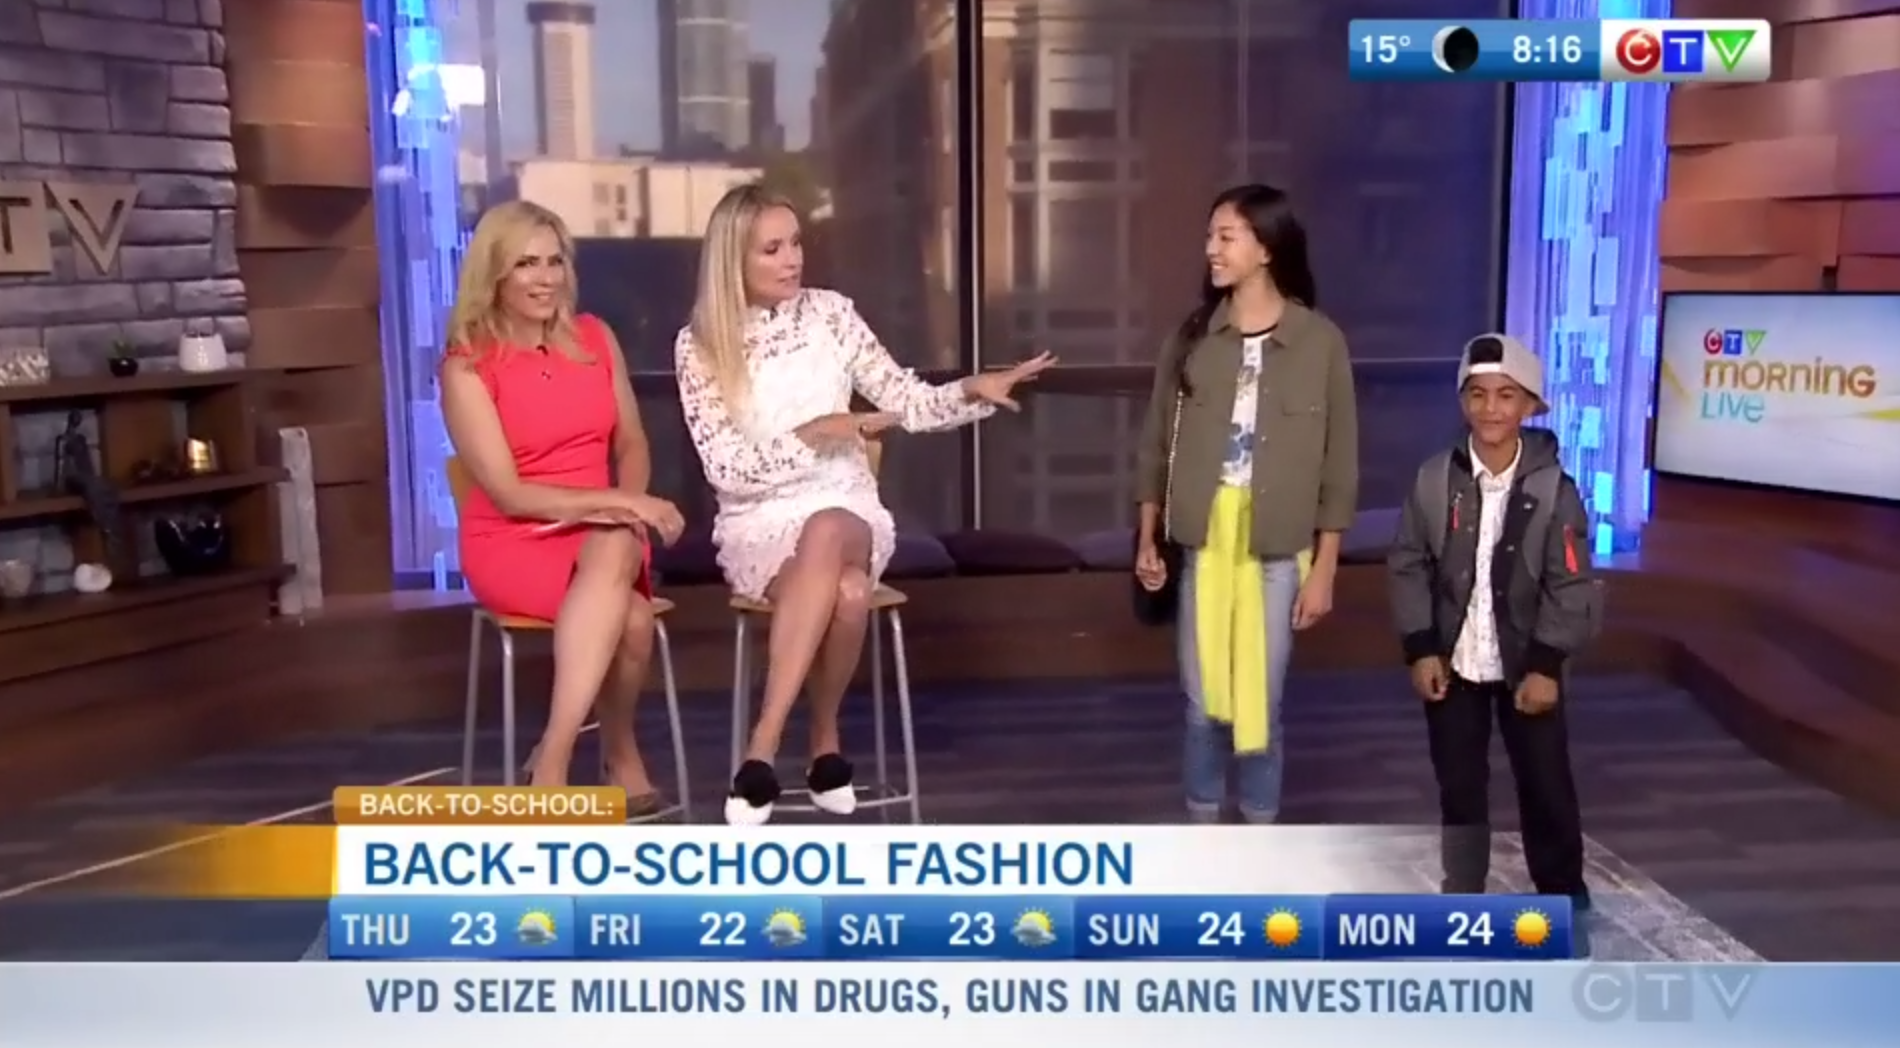 Back to School Fashion – CTV Morning Live Vancouver